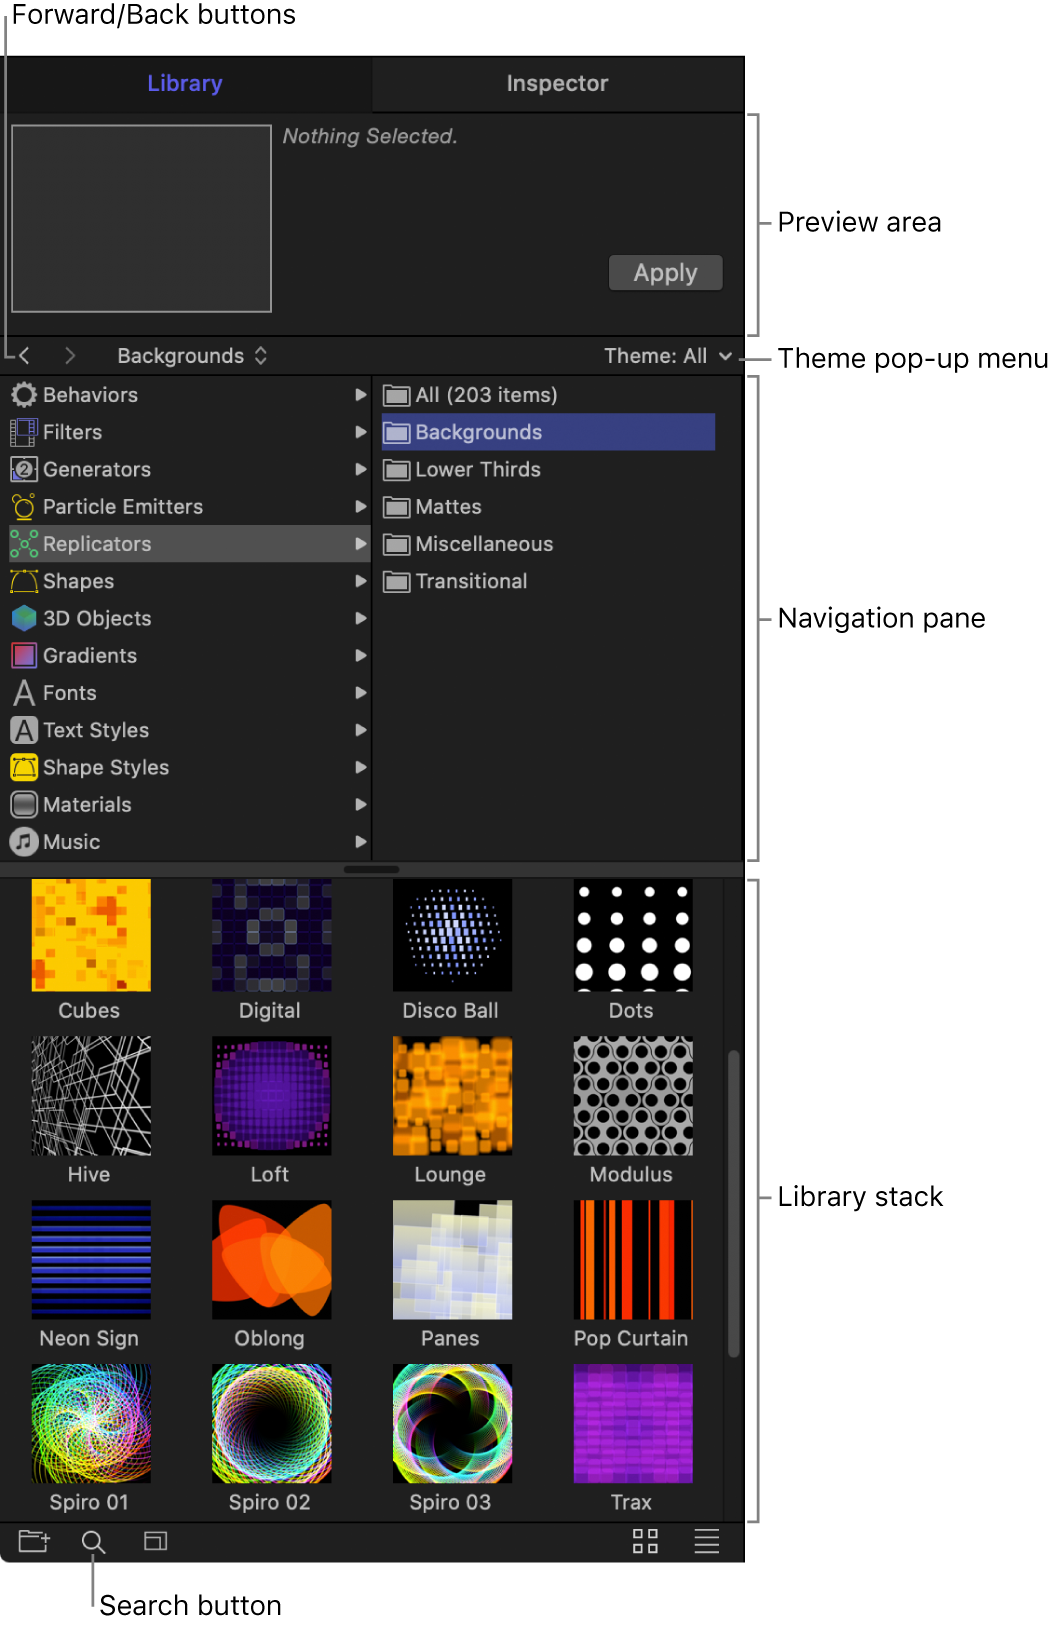 Areas of the Library: Preview area, forward and back buttons, Theme pop-up menu, navigation pane, Library stack, and the search button